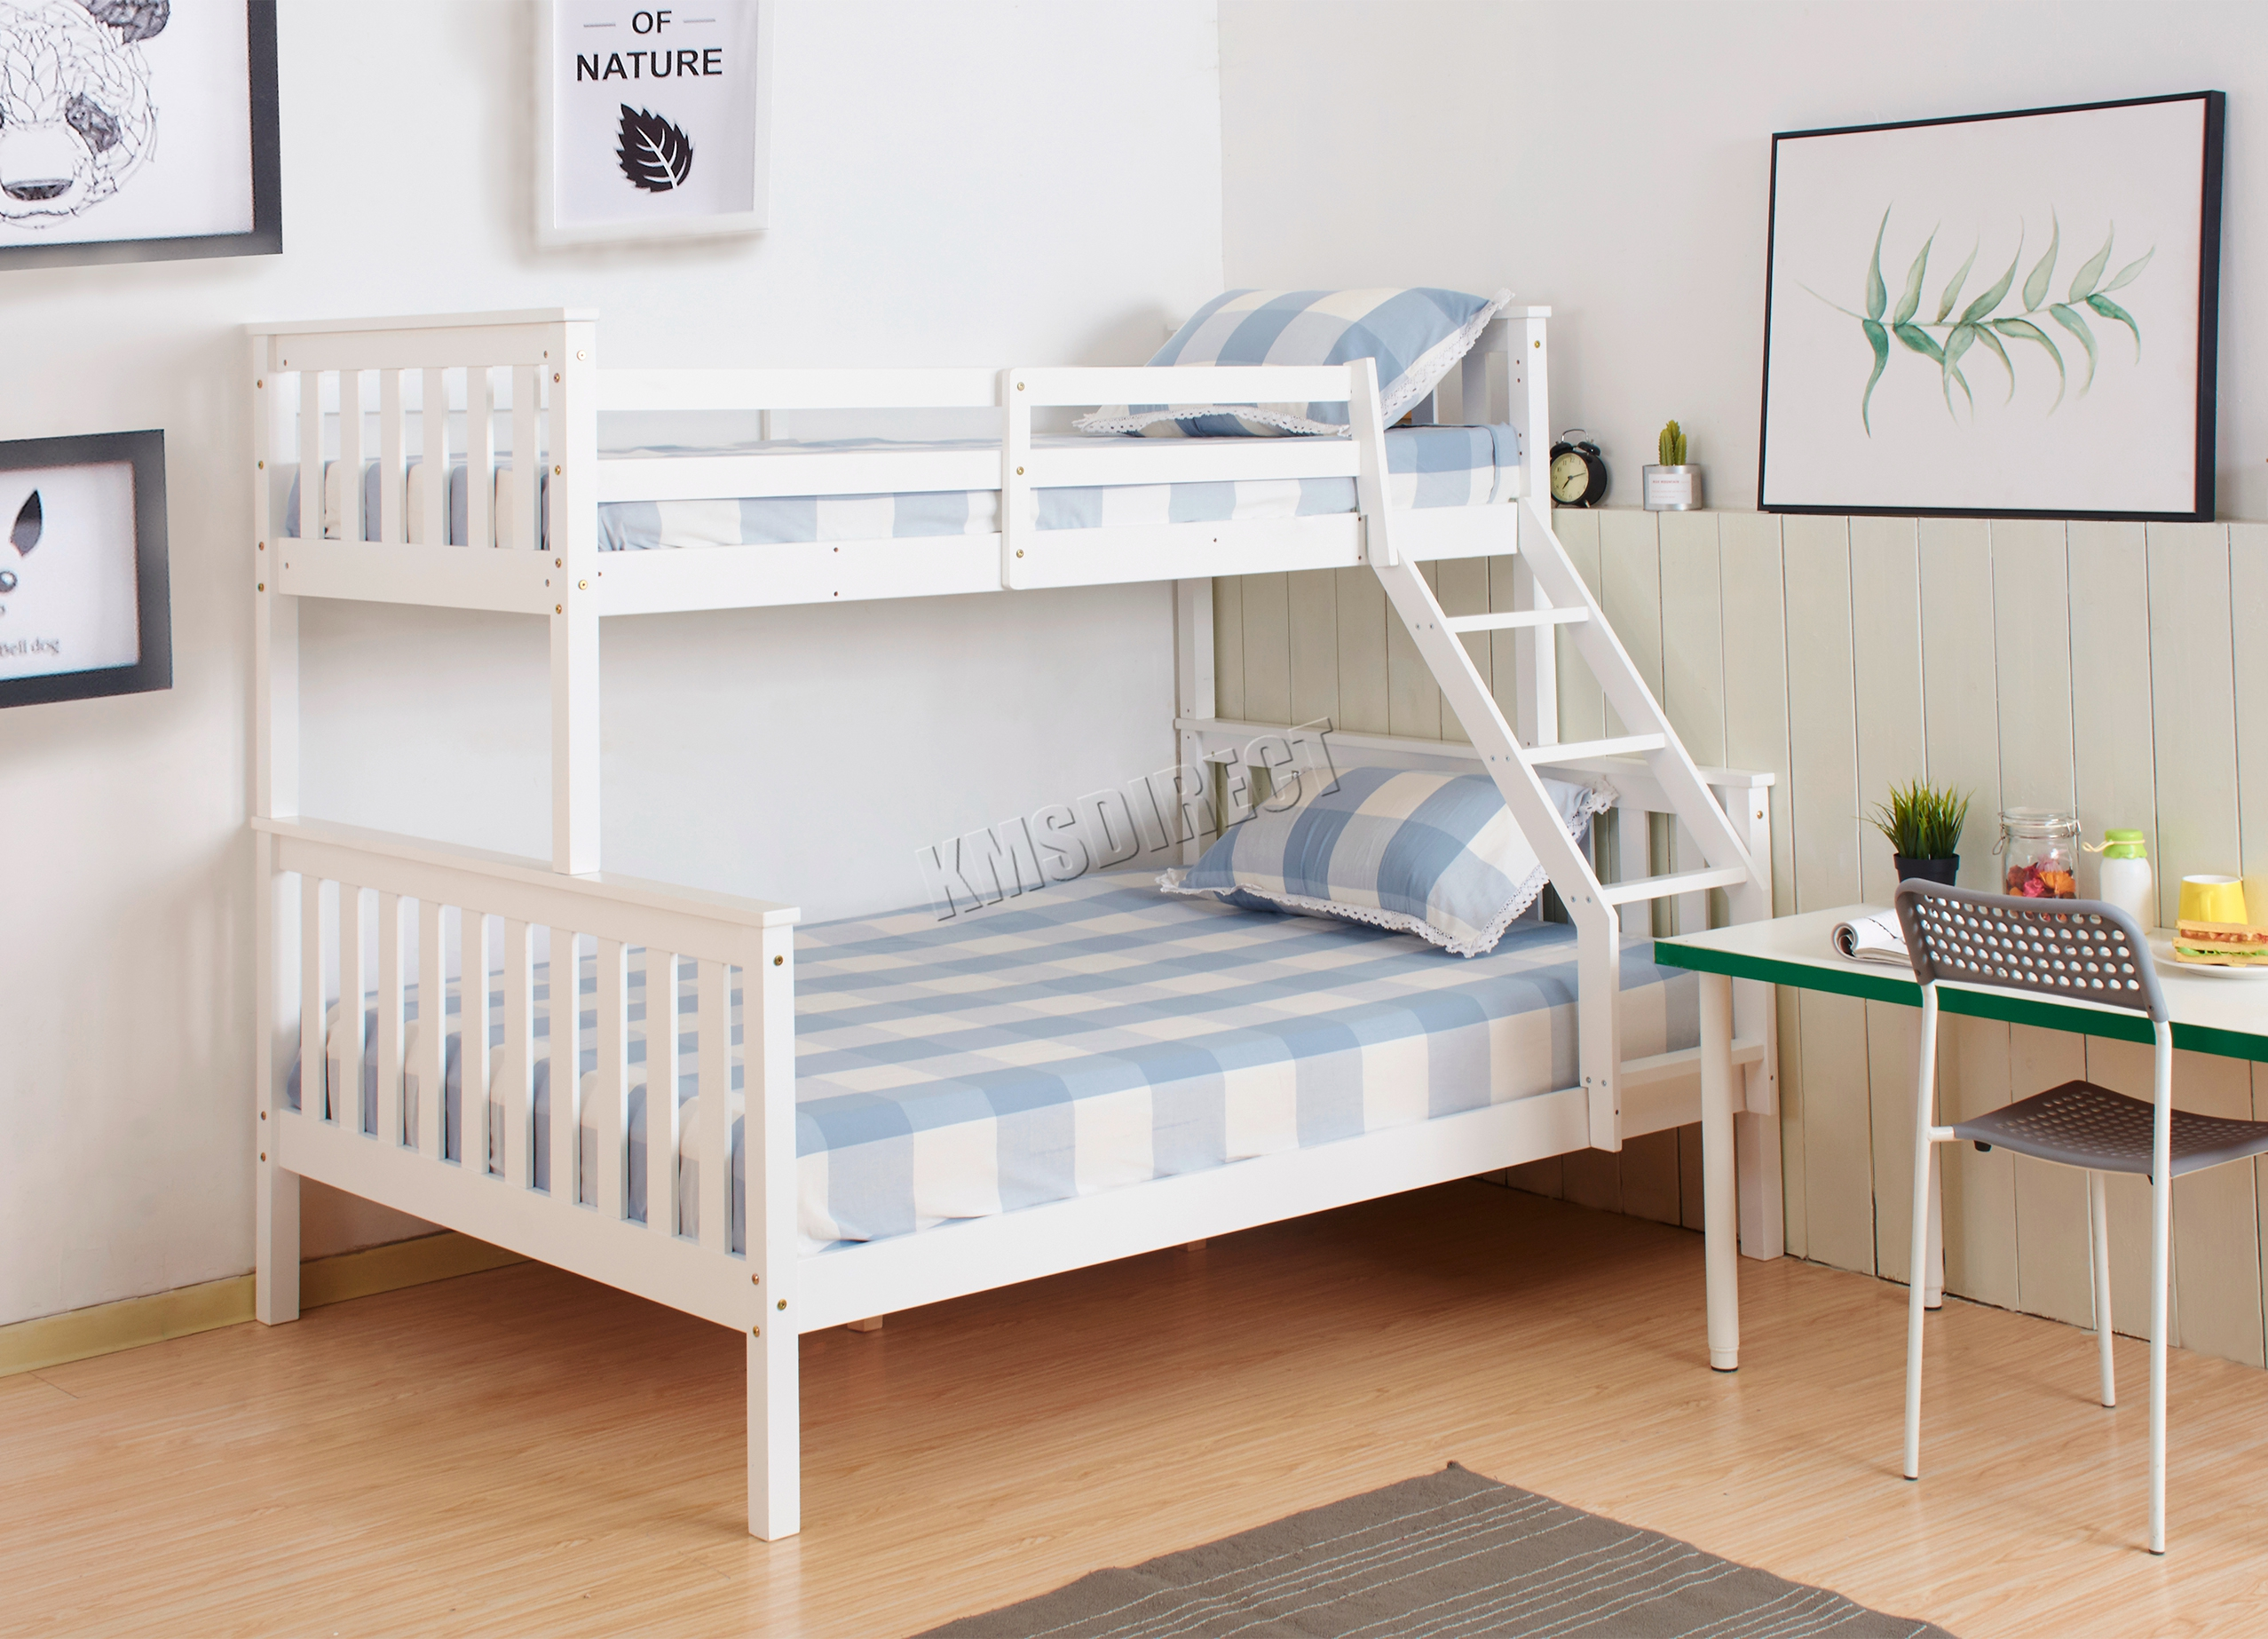 foxhunter bunk bed wooden frame children kids triple sleeper no mattress 3ft 4ft ebay. Black Bedroom Furniture Sets. Home Design Ideas